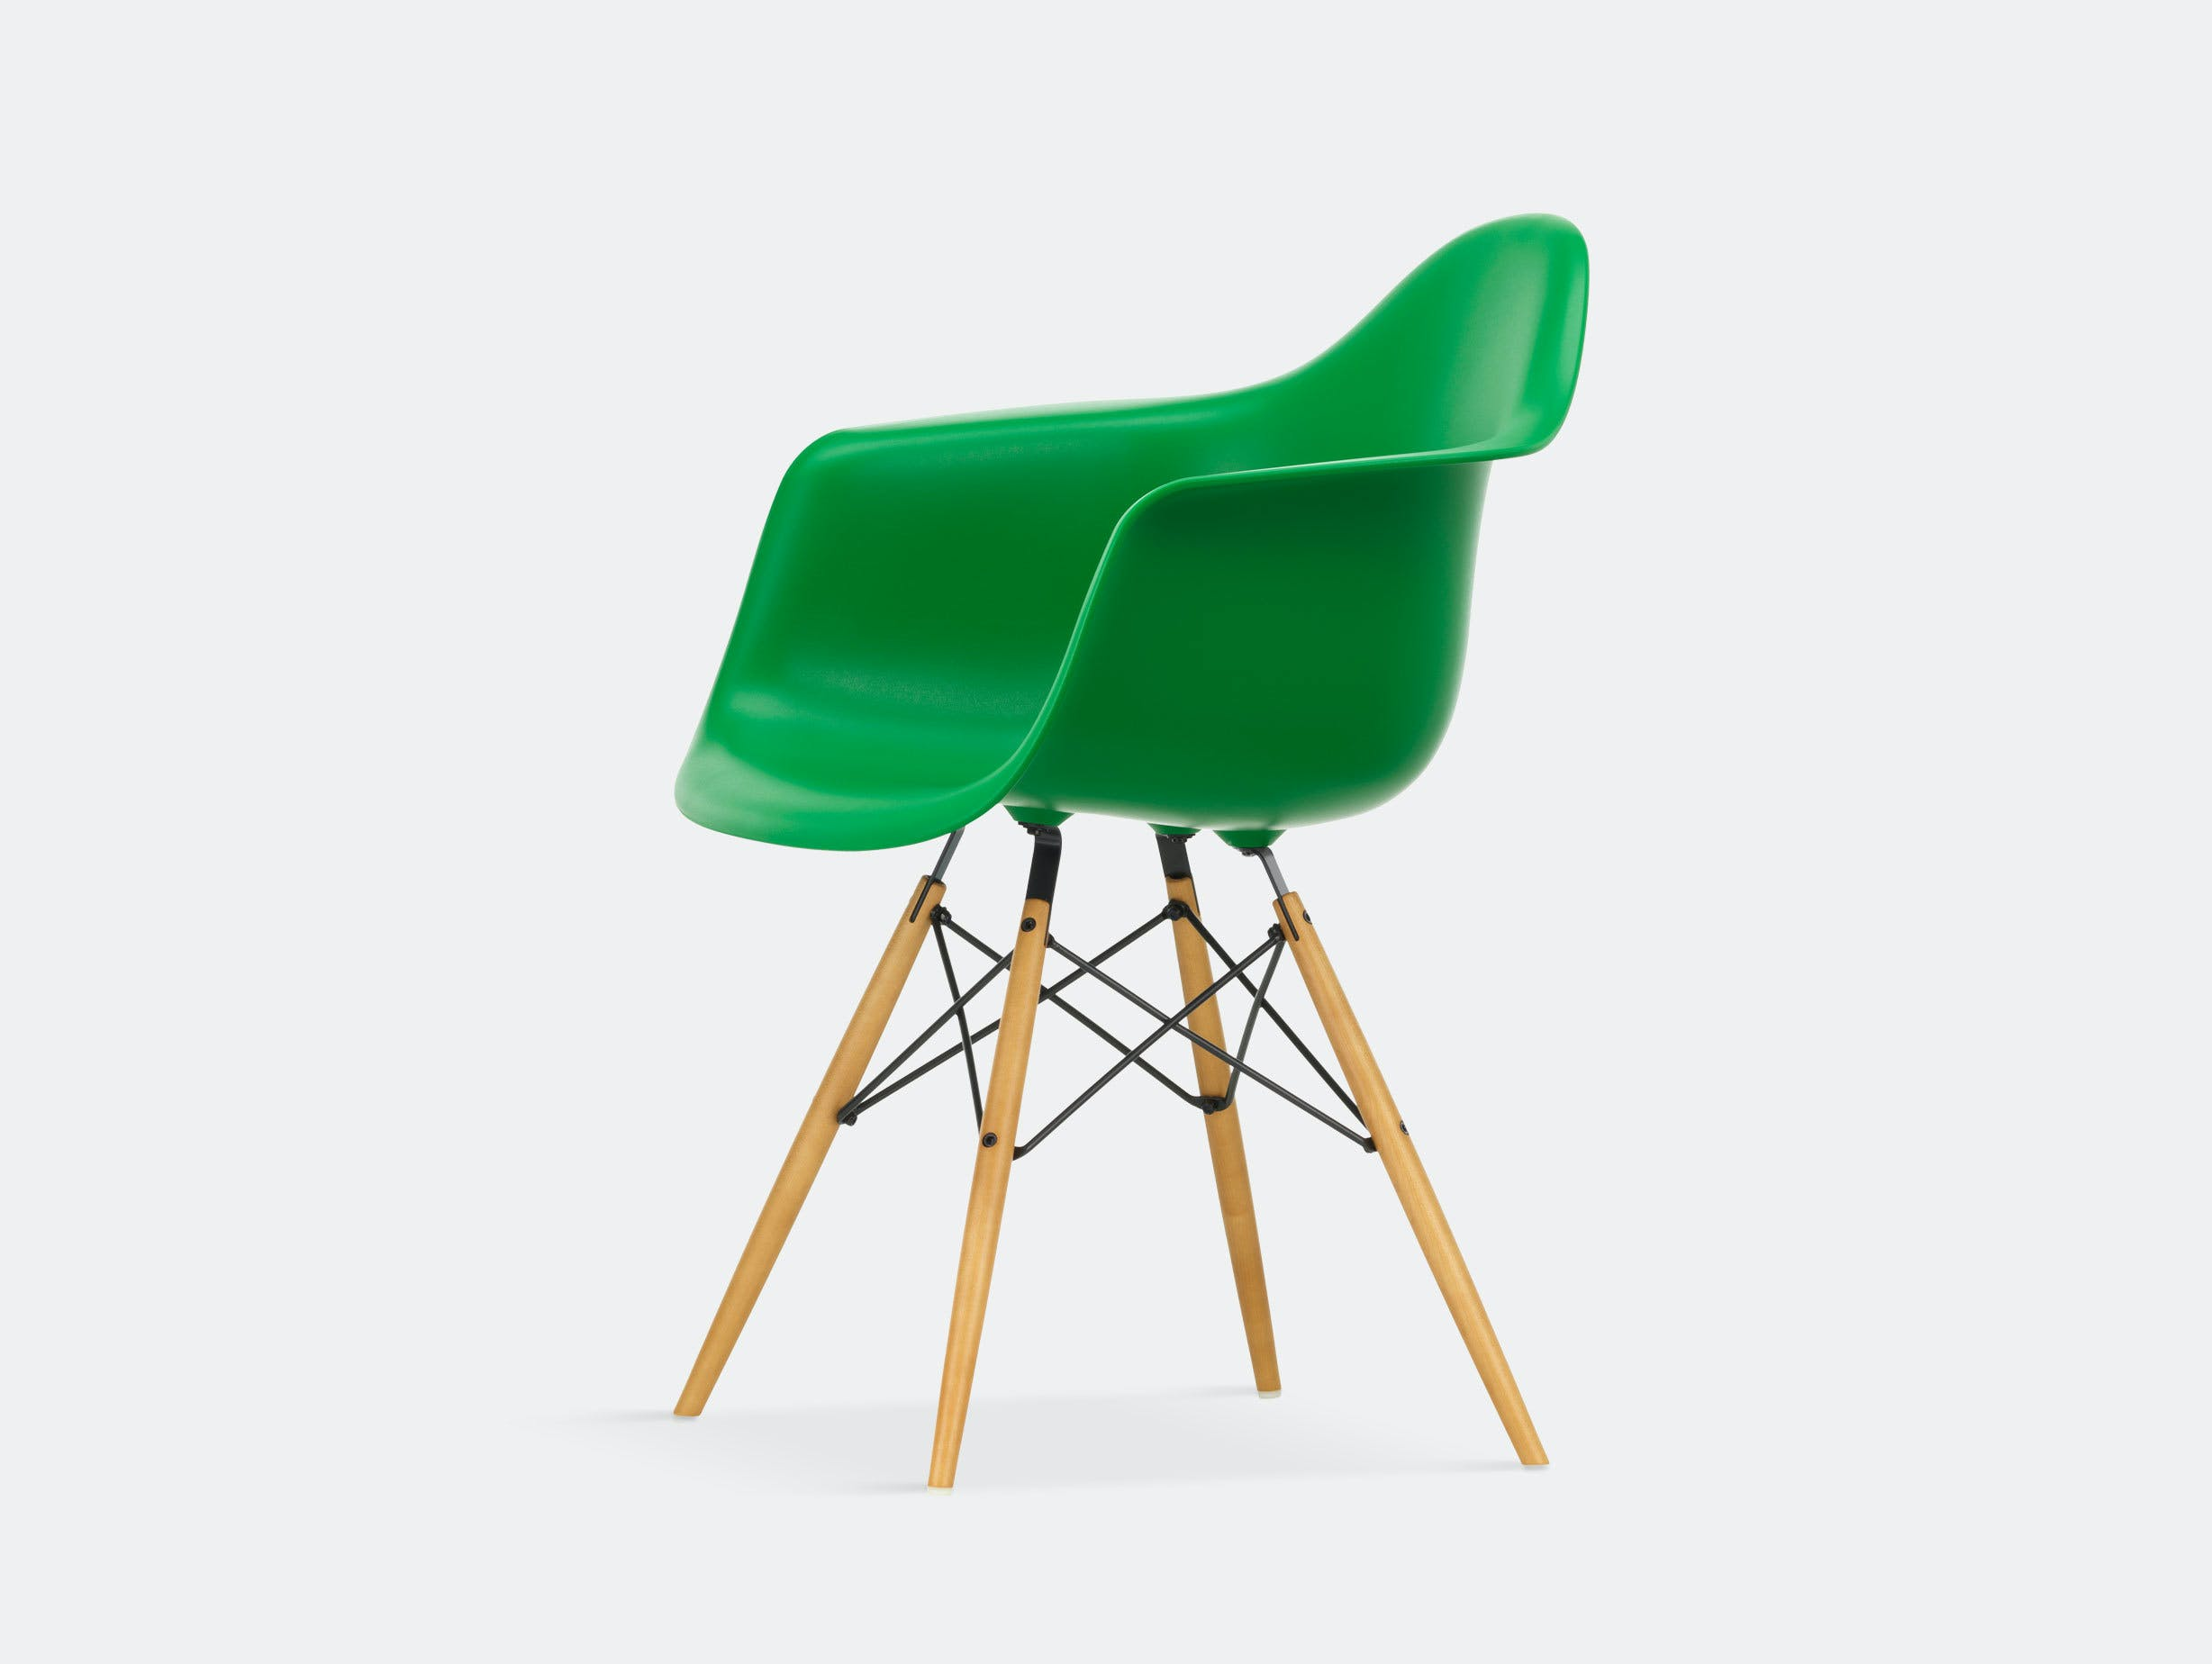 Vitra Eames Plastic Armchair DAW green golden maple legs